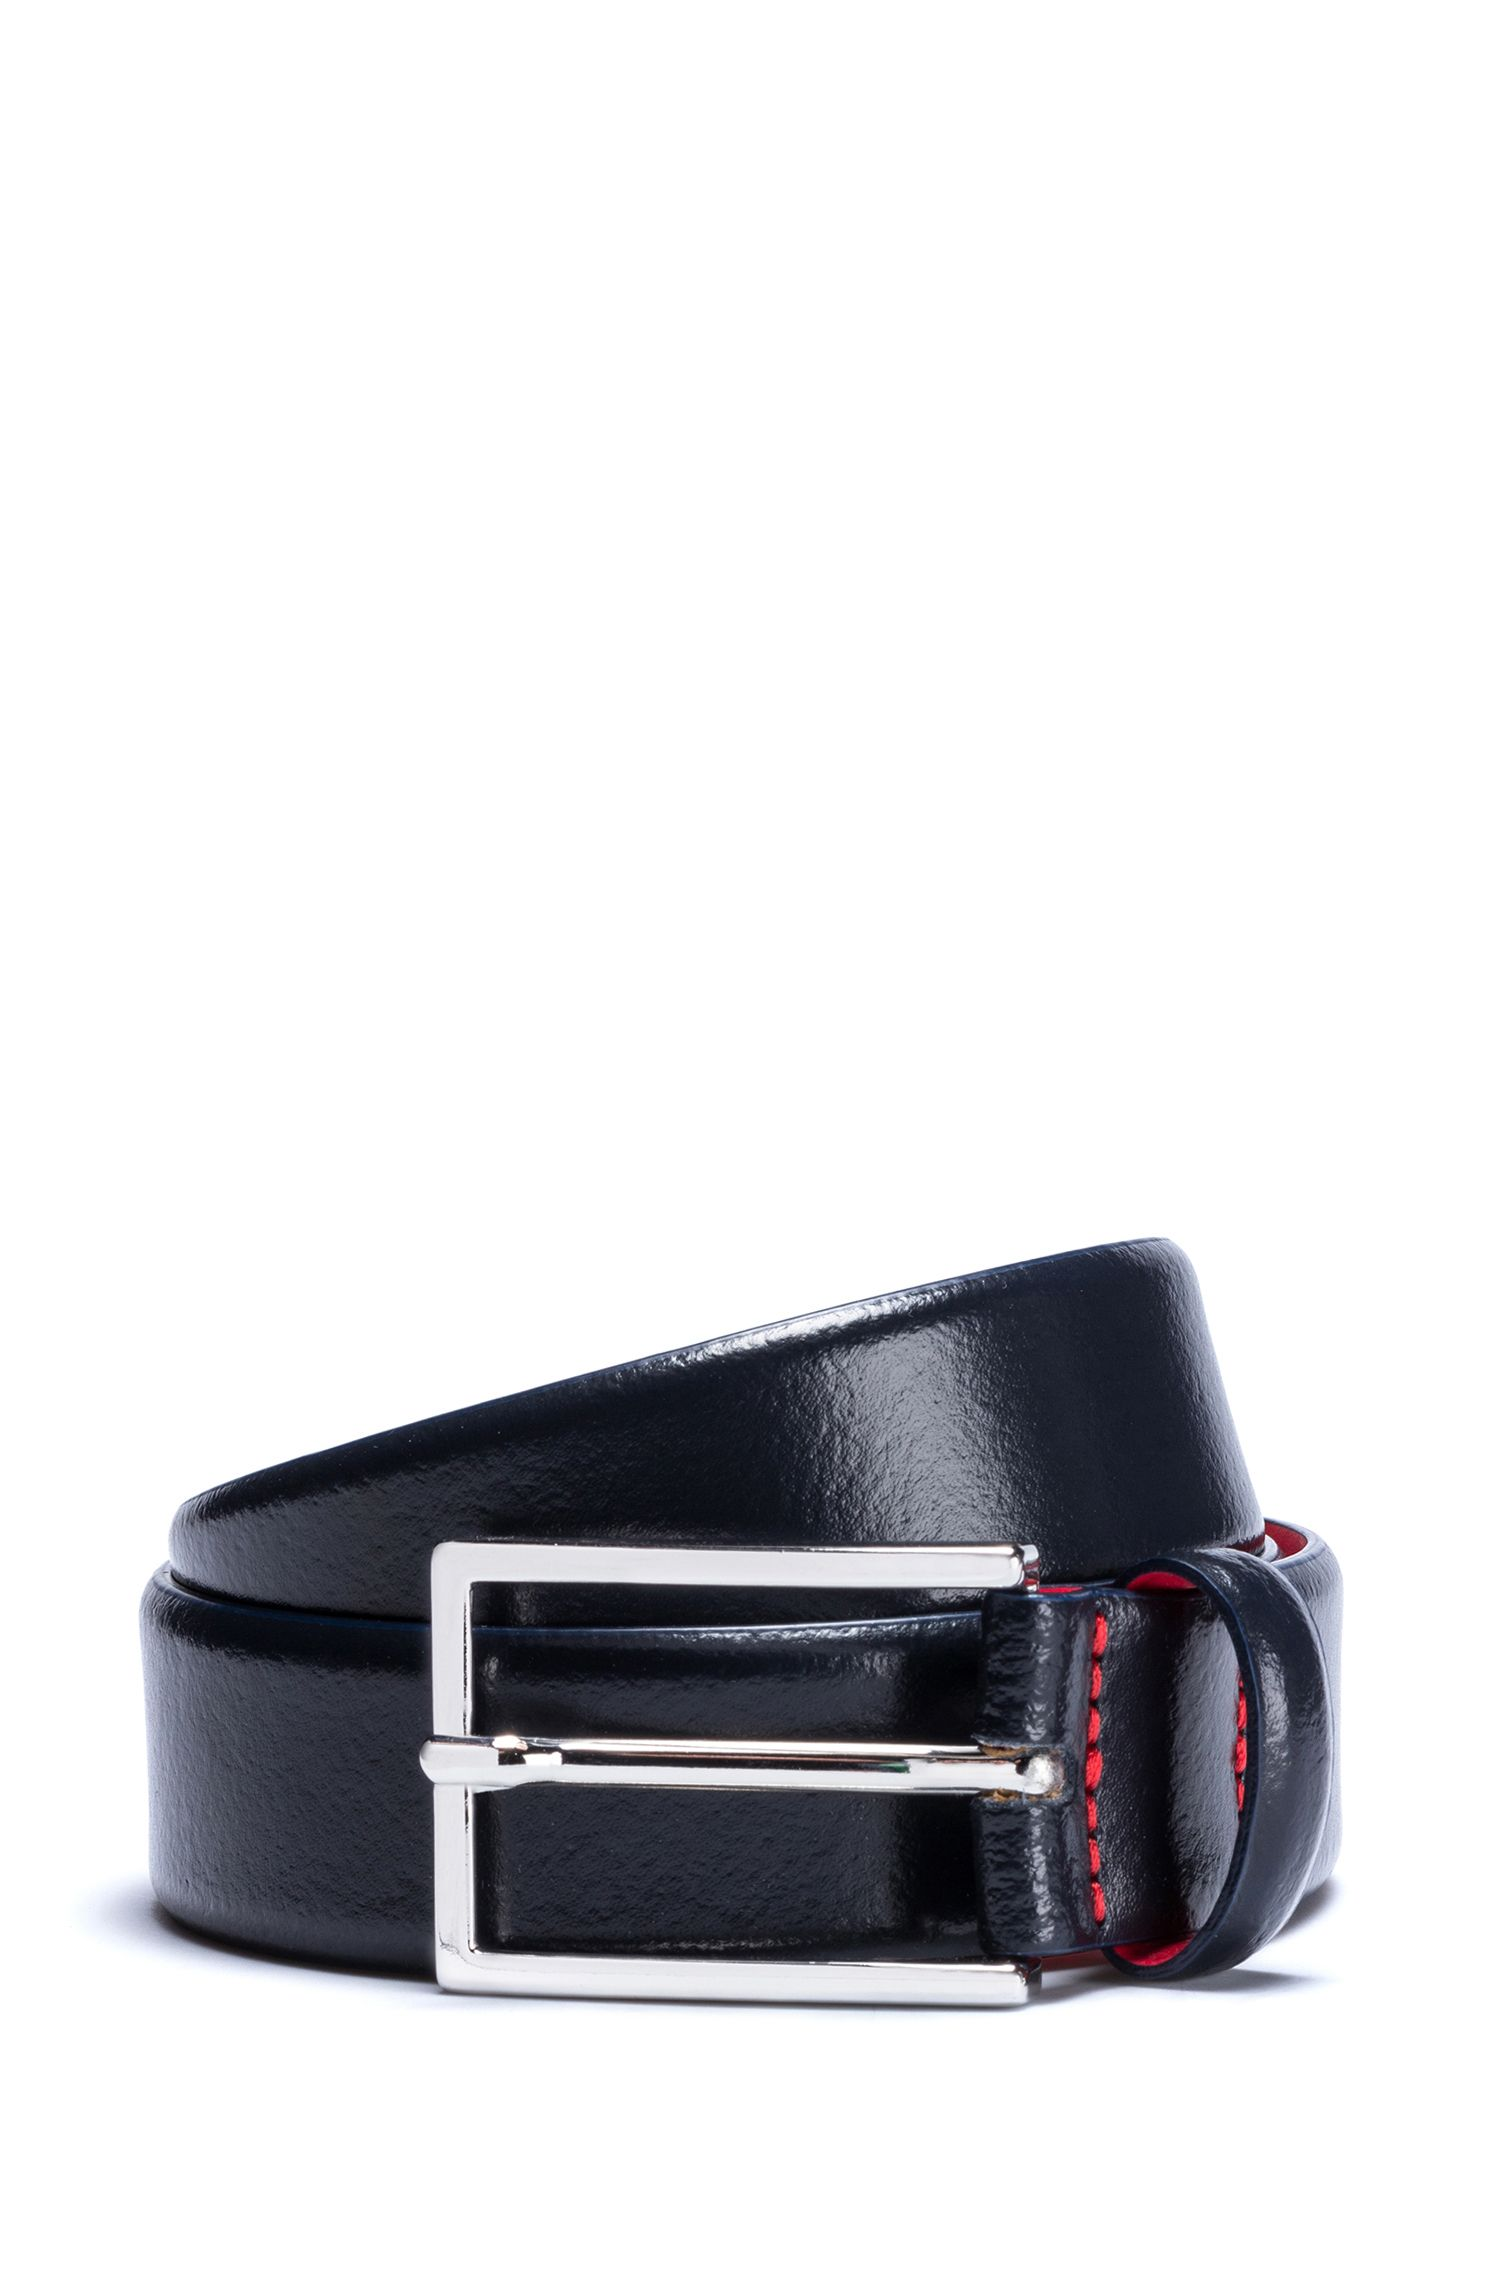 Italian Leather Contrast Belt | Gavrilo BL